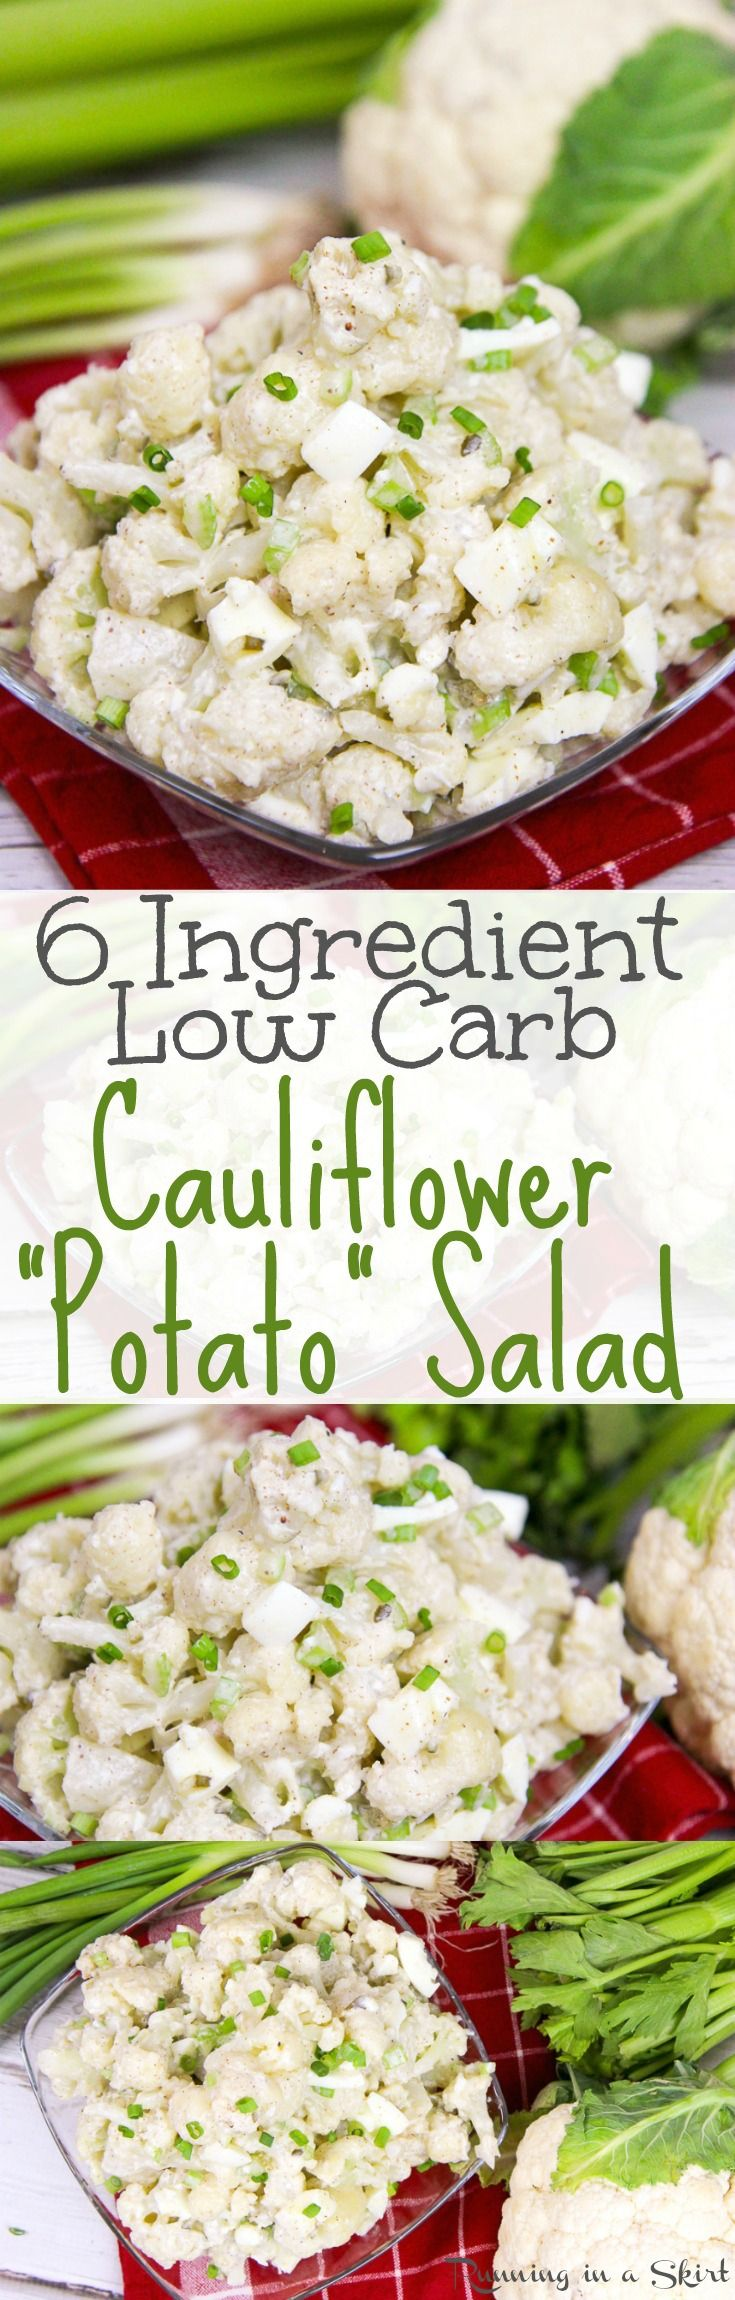 6 Ingredient Healthy Low Carb Cauliflower Potato Salad recipe! Also low calorie.. The best tasty, easy mock potato salad using greek yogurt (no mayo!)  A simple and nutritious twist on the classic comfort foods. / Running in a Skirt